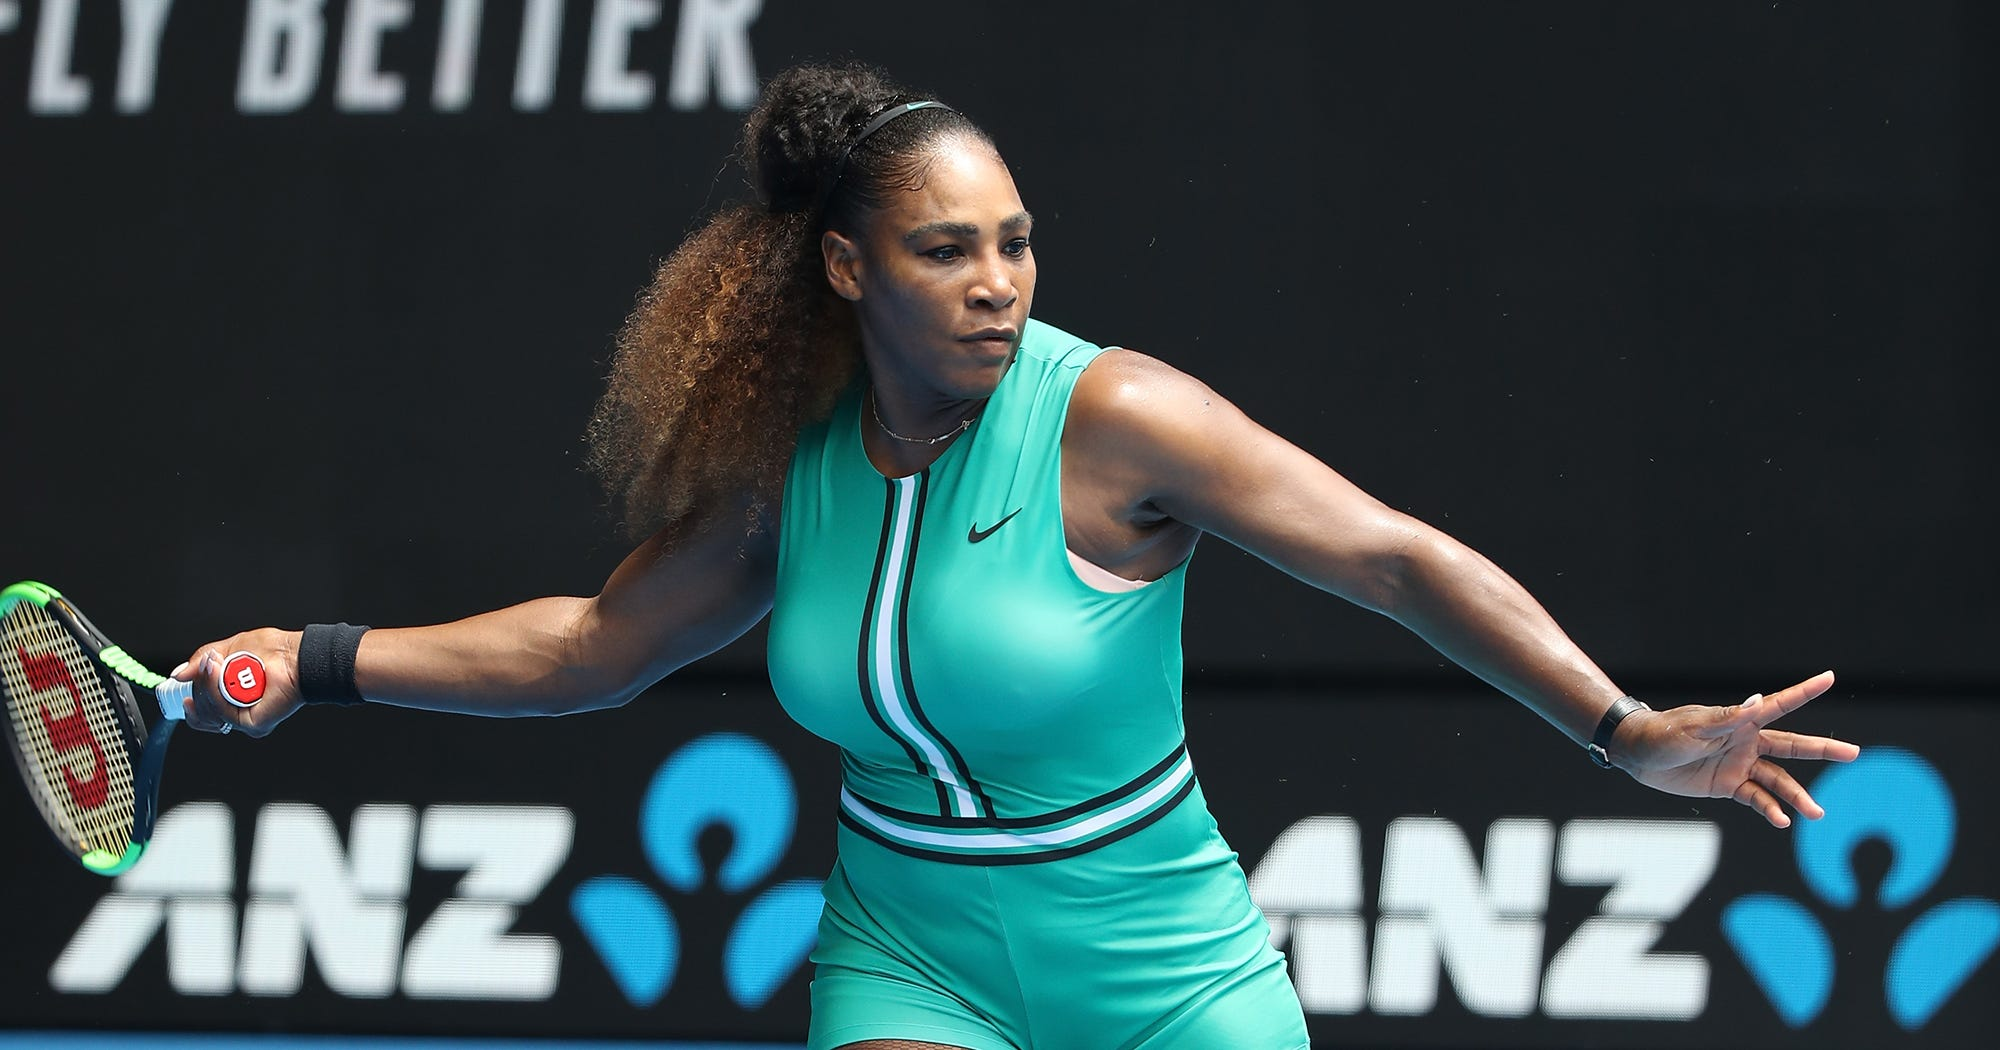 ba3469b755b Serena Williams Green Outfit   Fishnets Ruled The Court